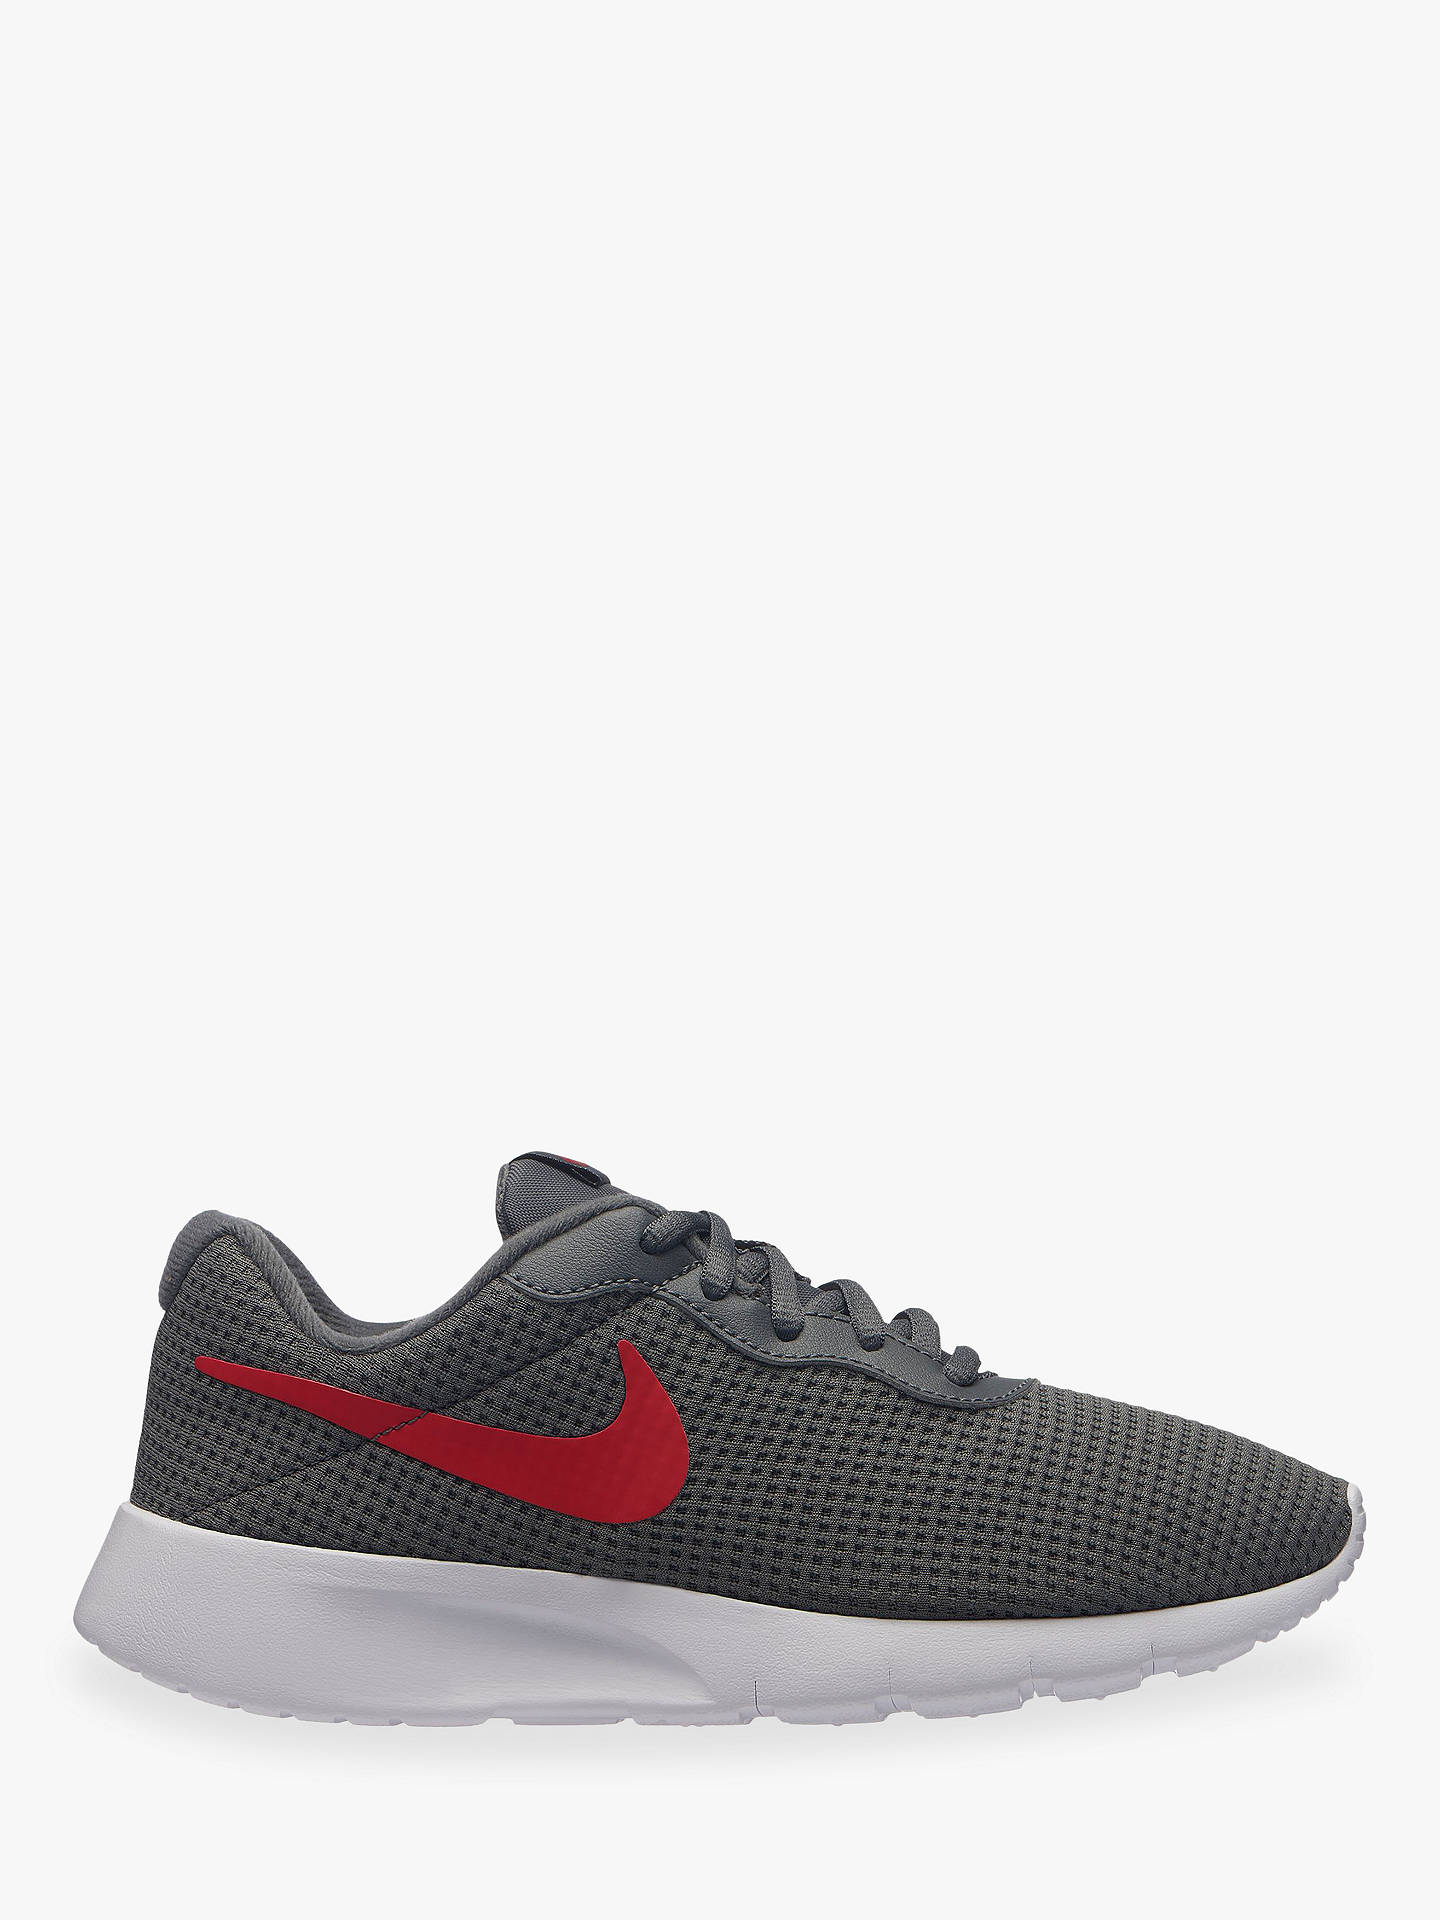 uk buynike childrens tanjun gs trainers dark grey red 3 online at  johnlewis. 163bf 7bbfe fcba229e43821